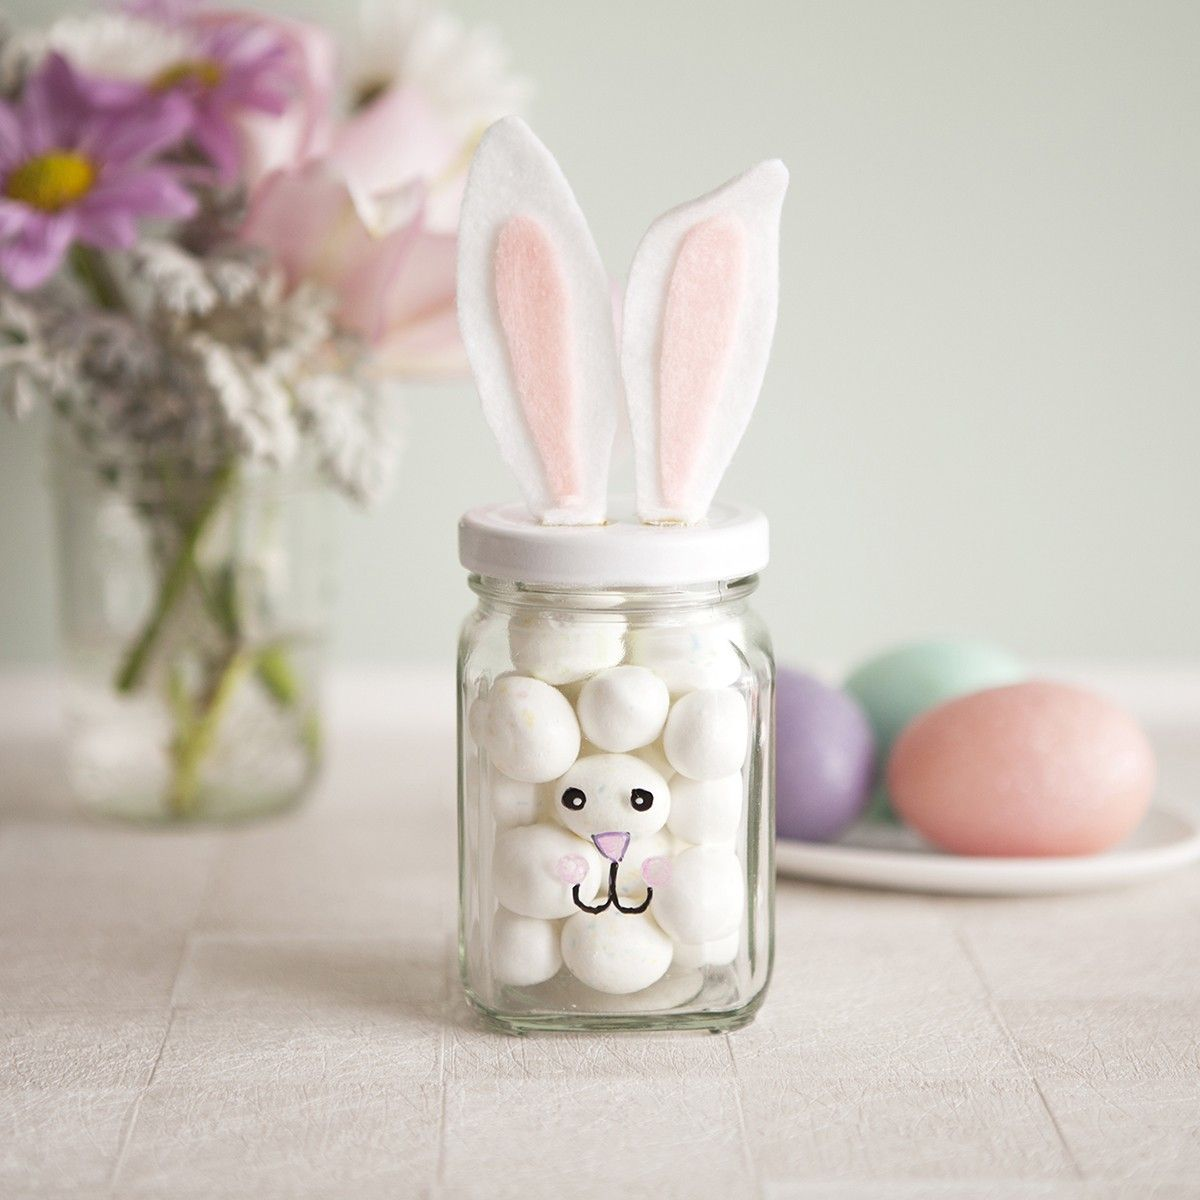 Beauteous diy easter bunny mason jar idea in pastel with long ears beauteous diy easter bunny mason jar idea in pastel with long ears and doodled face and white eggs inside for easter gift negle Images